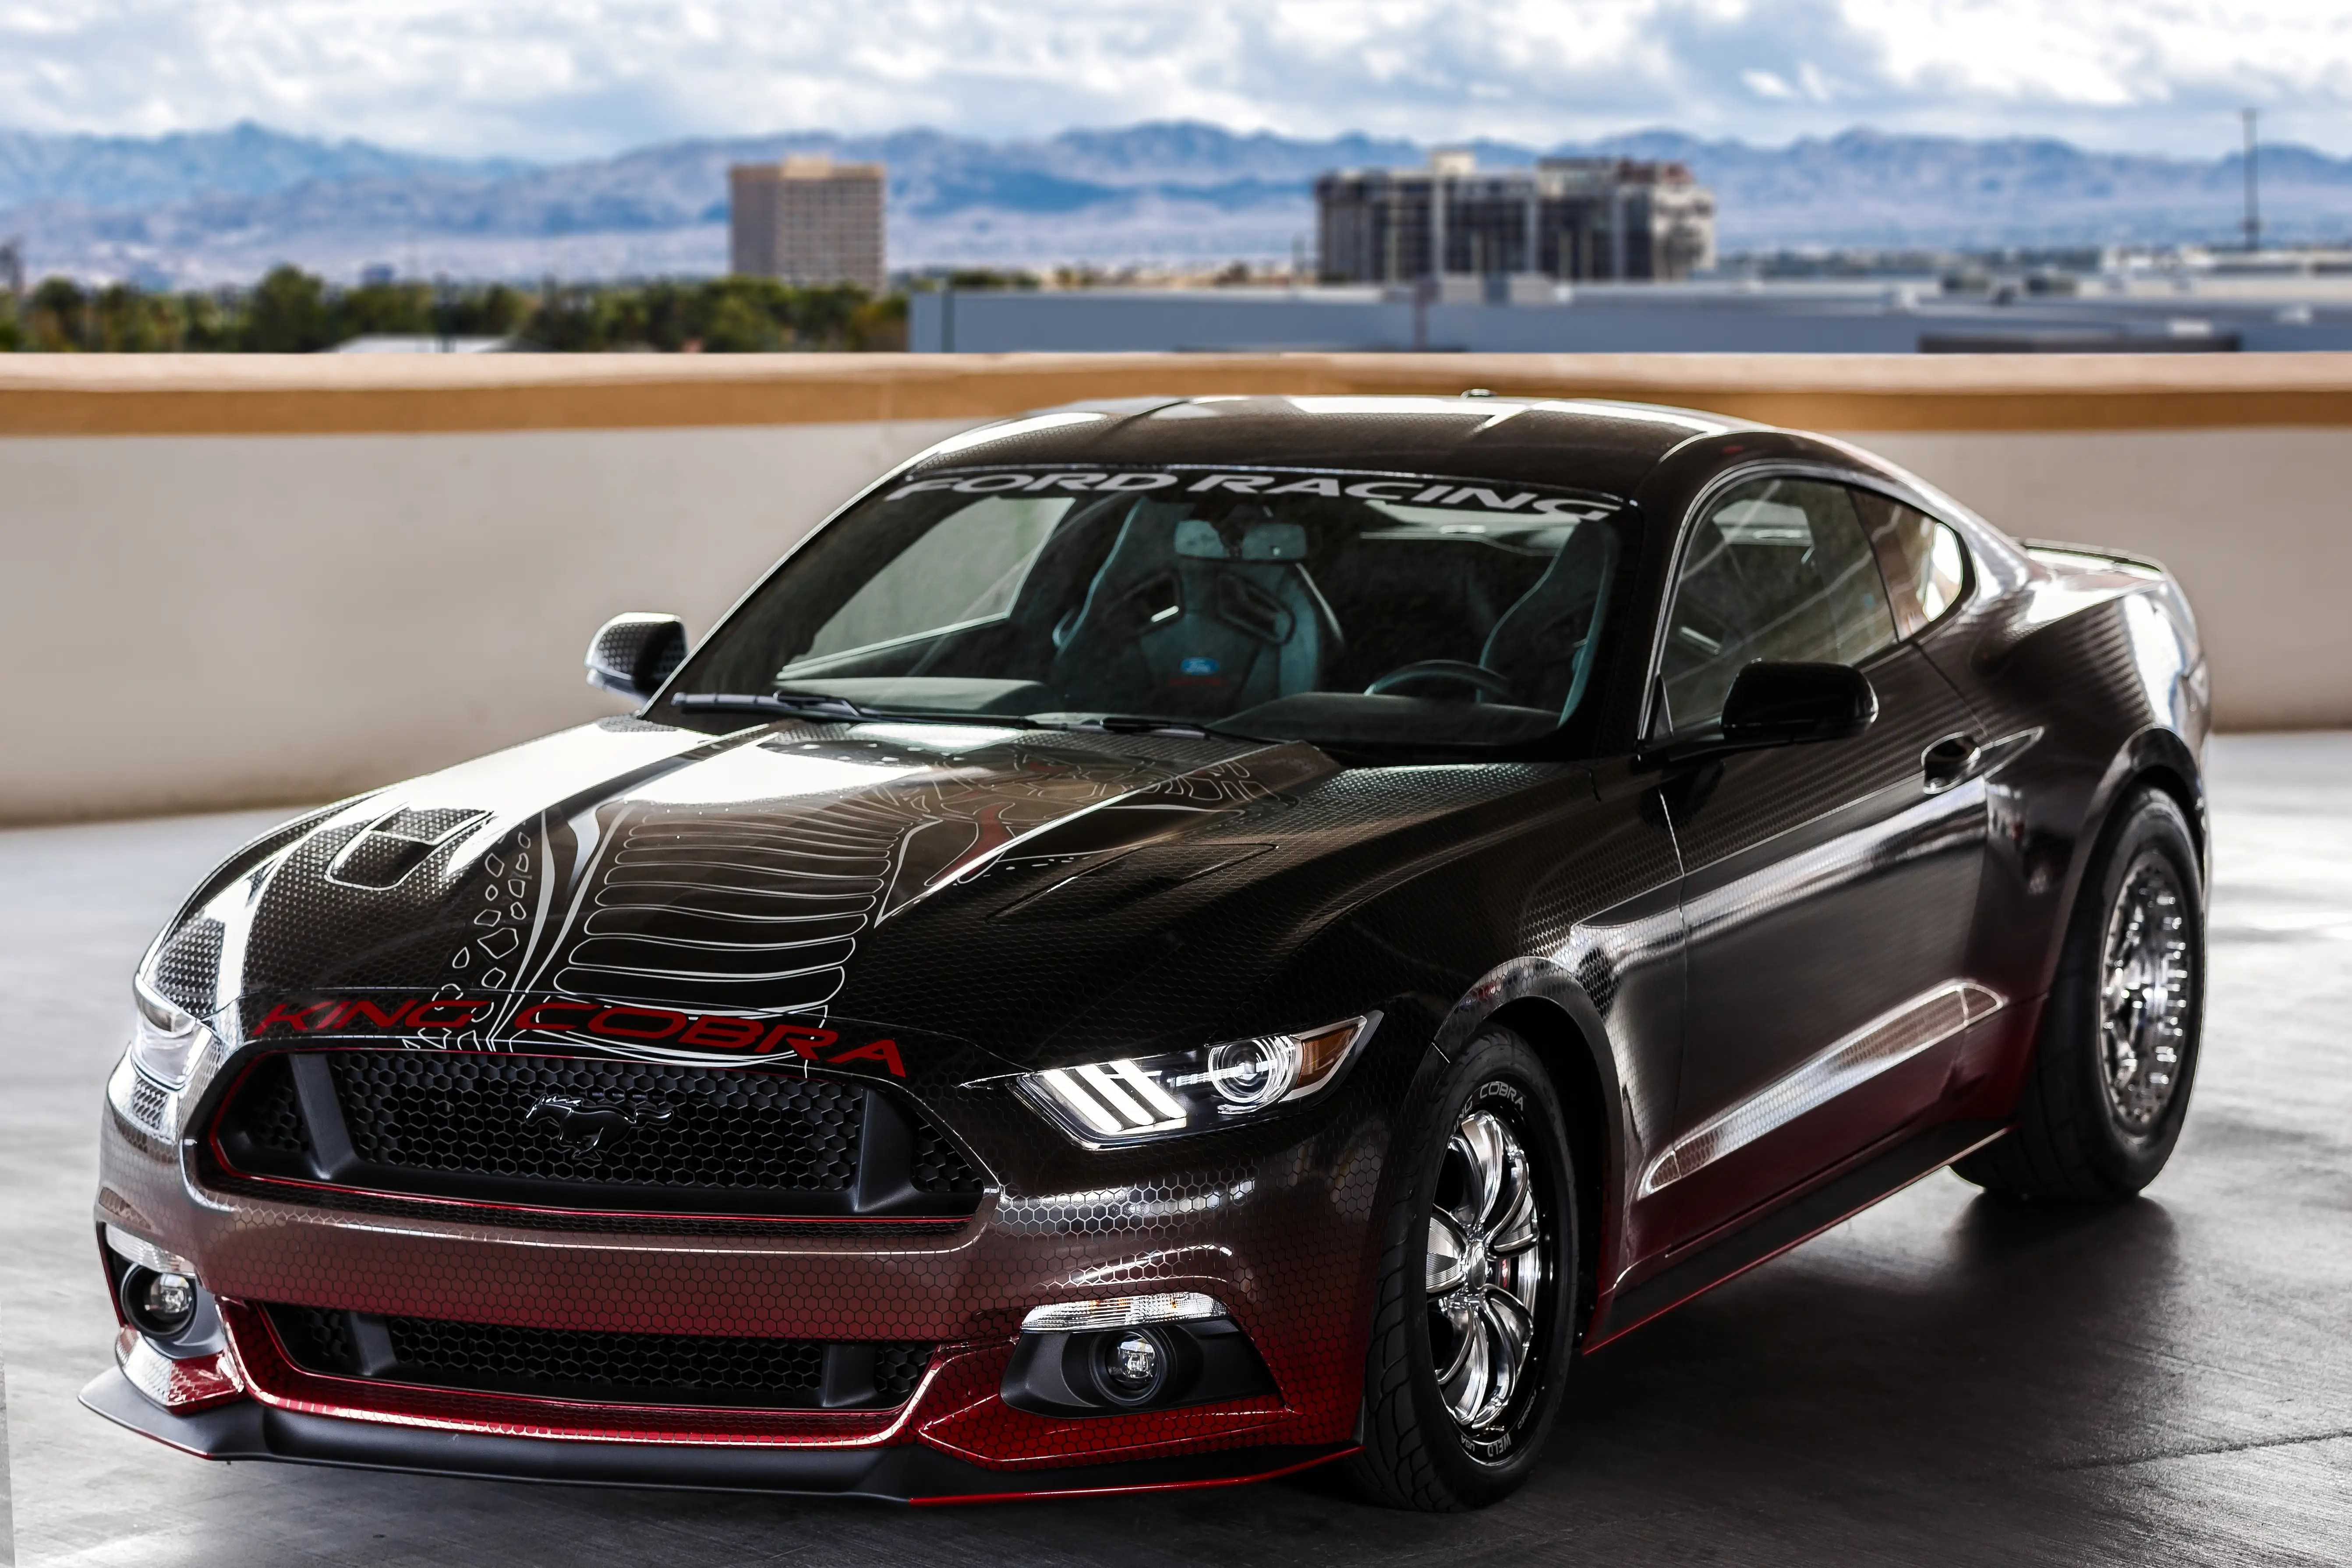 Ford showed up with a dragster, as well, with this 600 horsepower King Cobra Mustang.